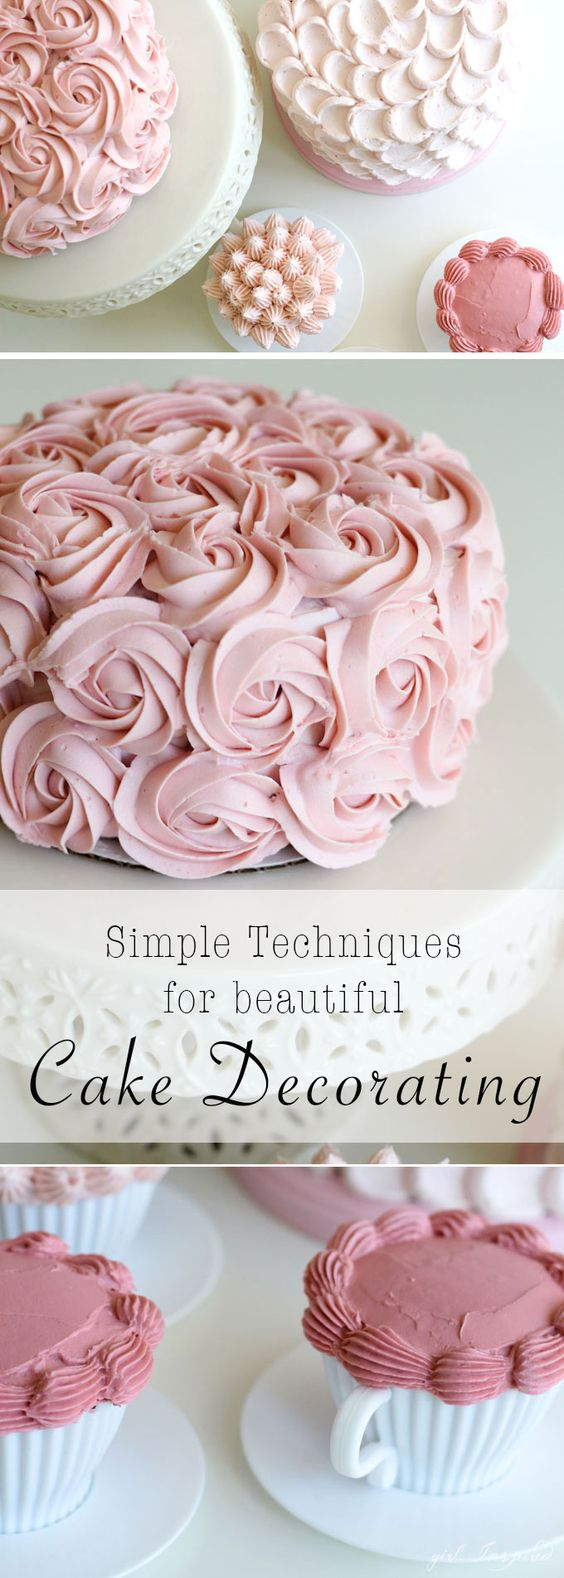 Learn these simple techniques for cake decorating!